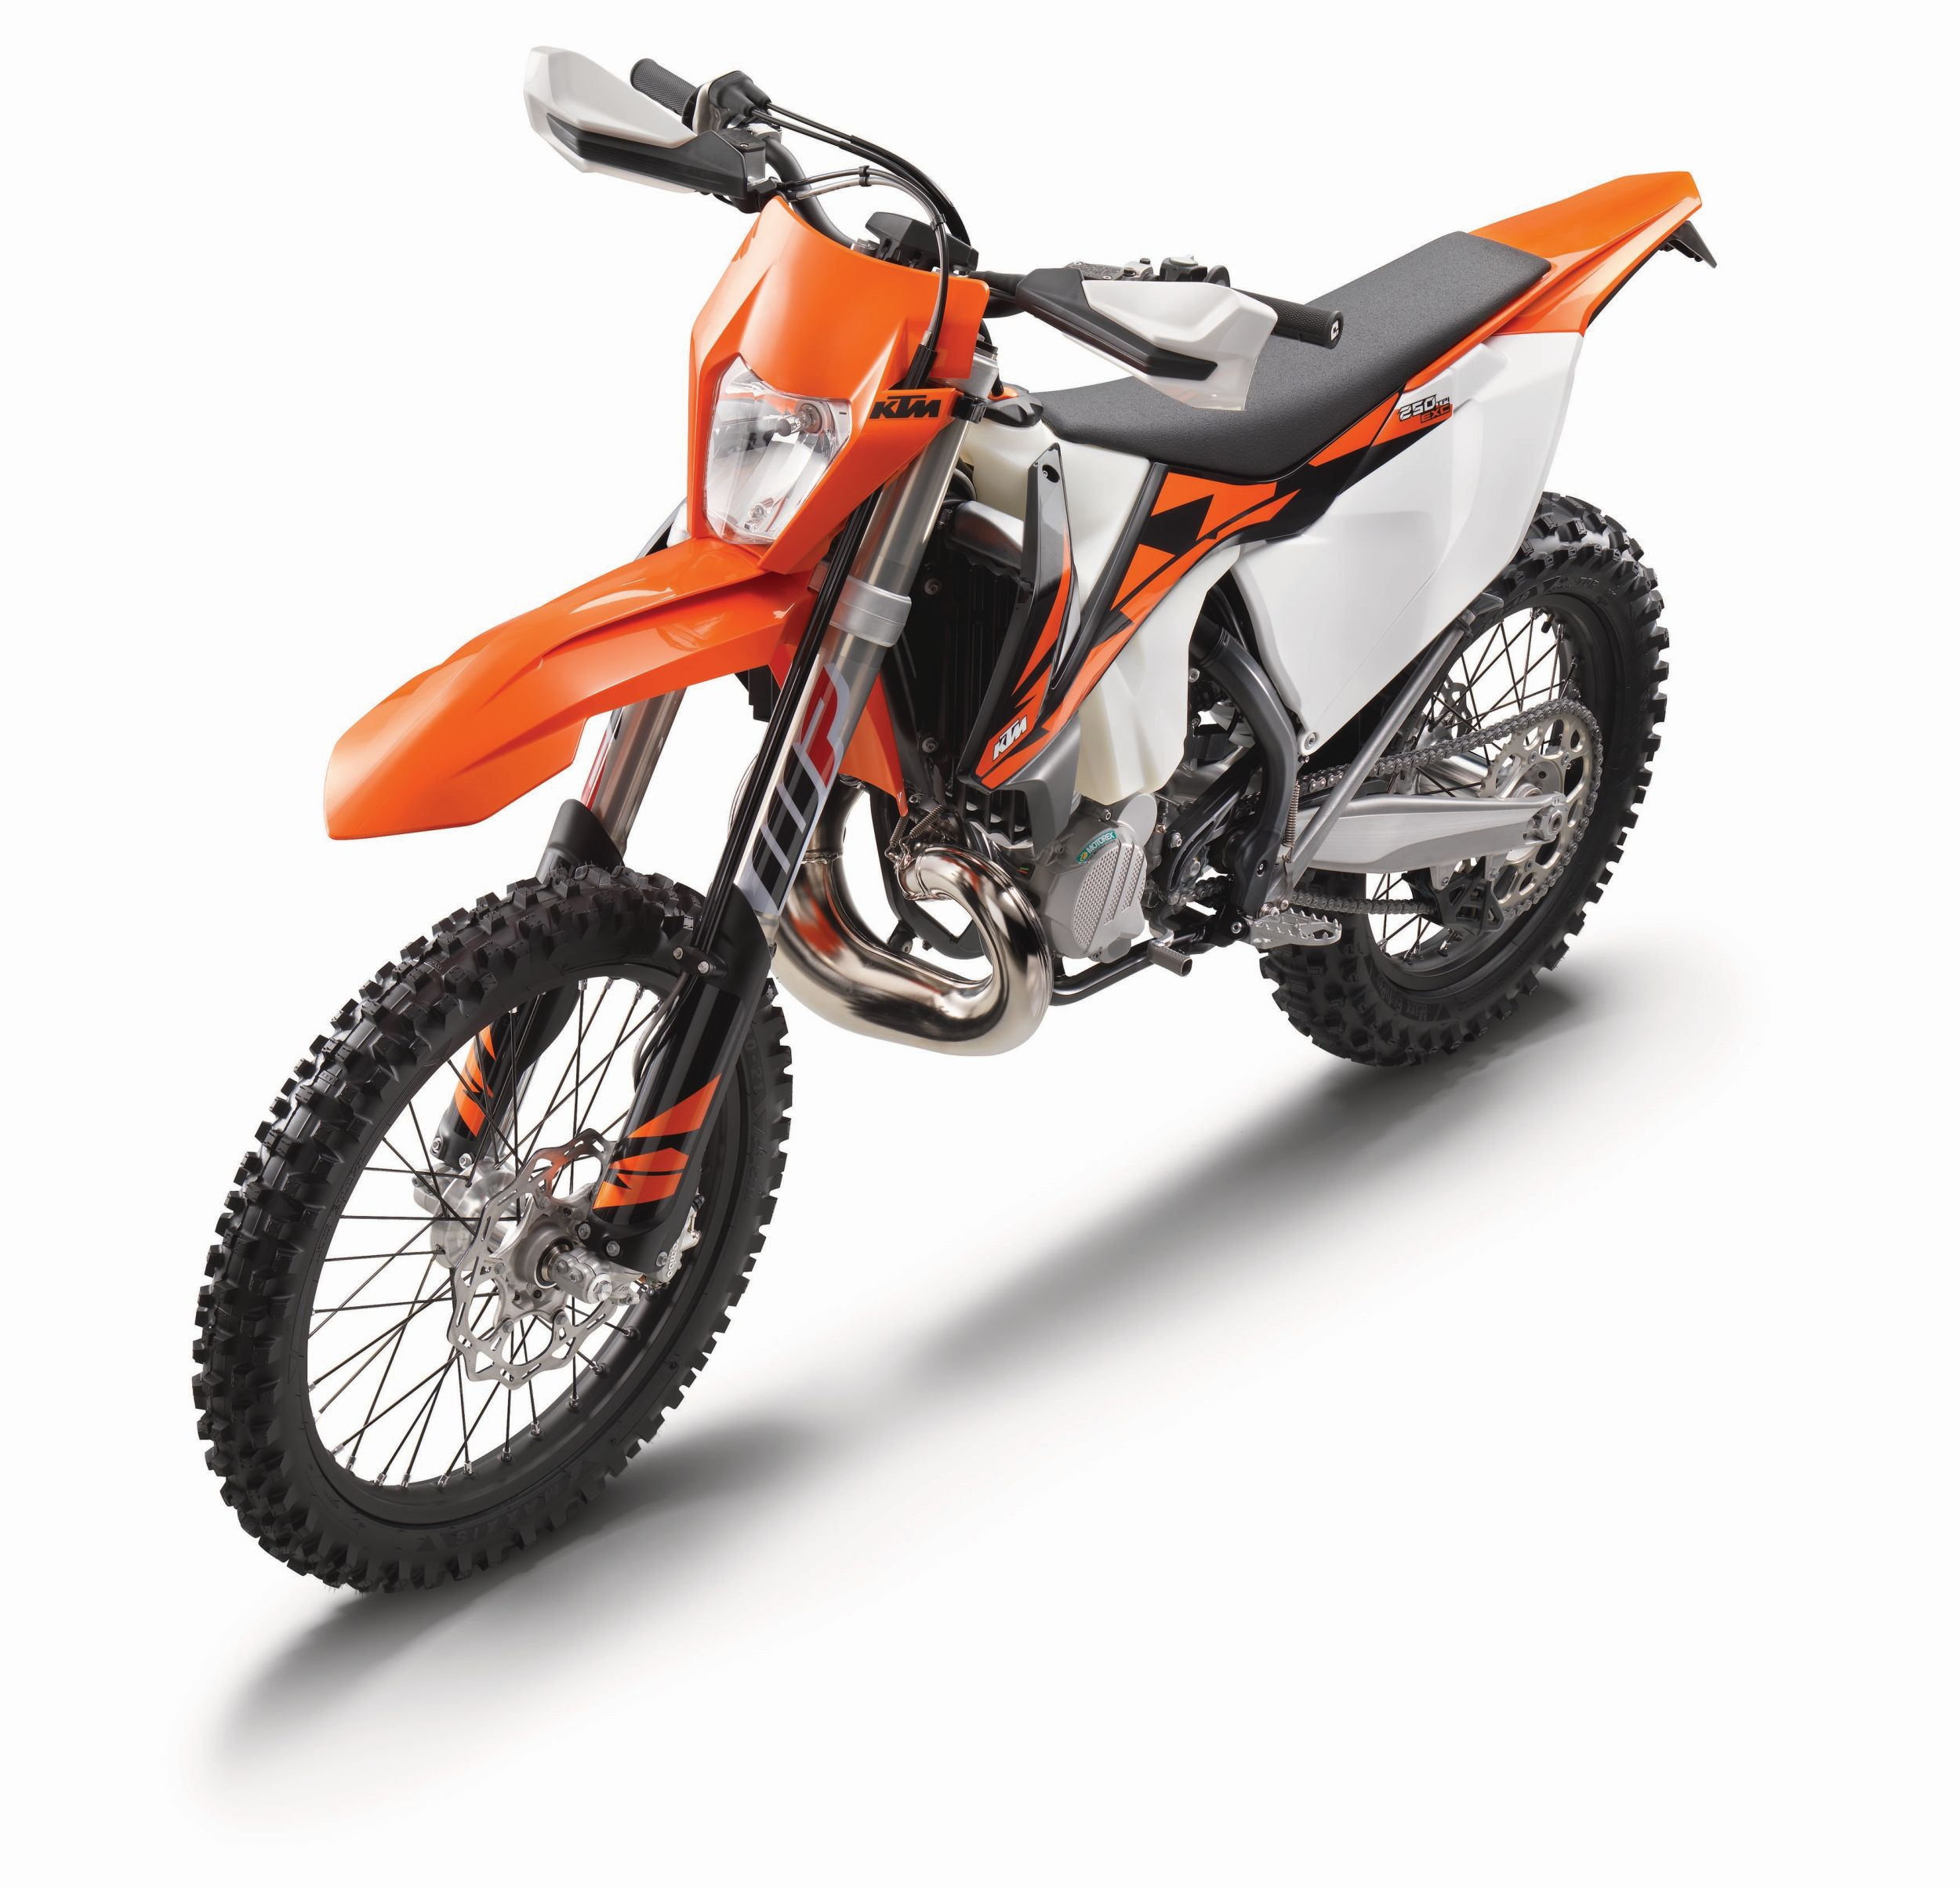 Ktm 250 Exc Tpi All Technical Data Of The Model 250 Exc Tpi From Ktm